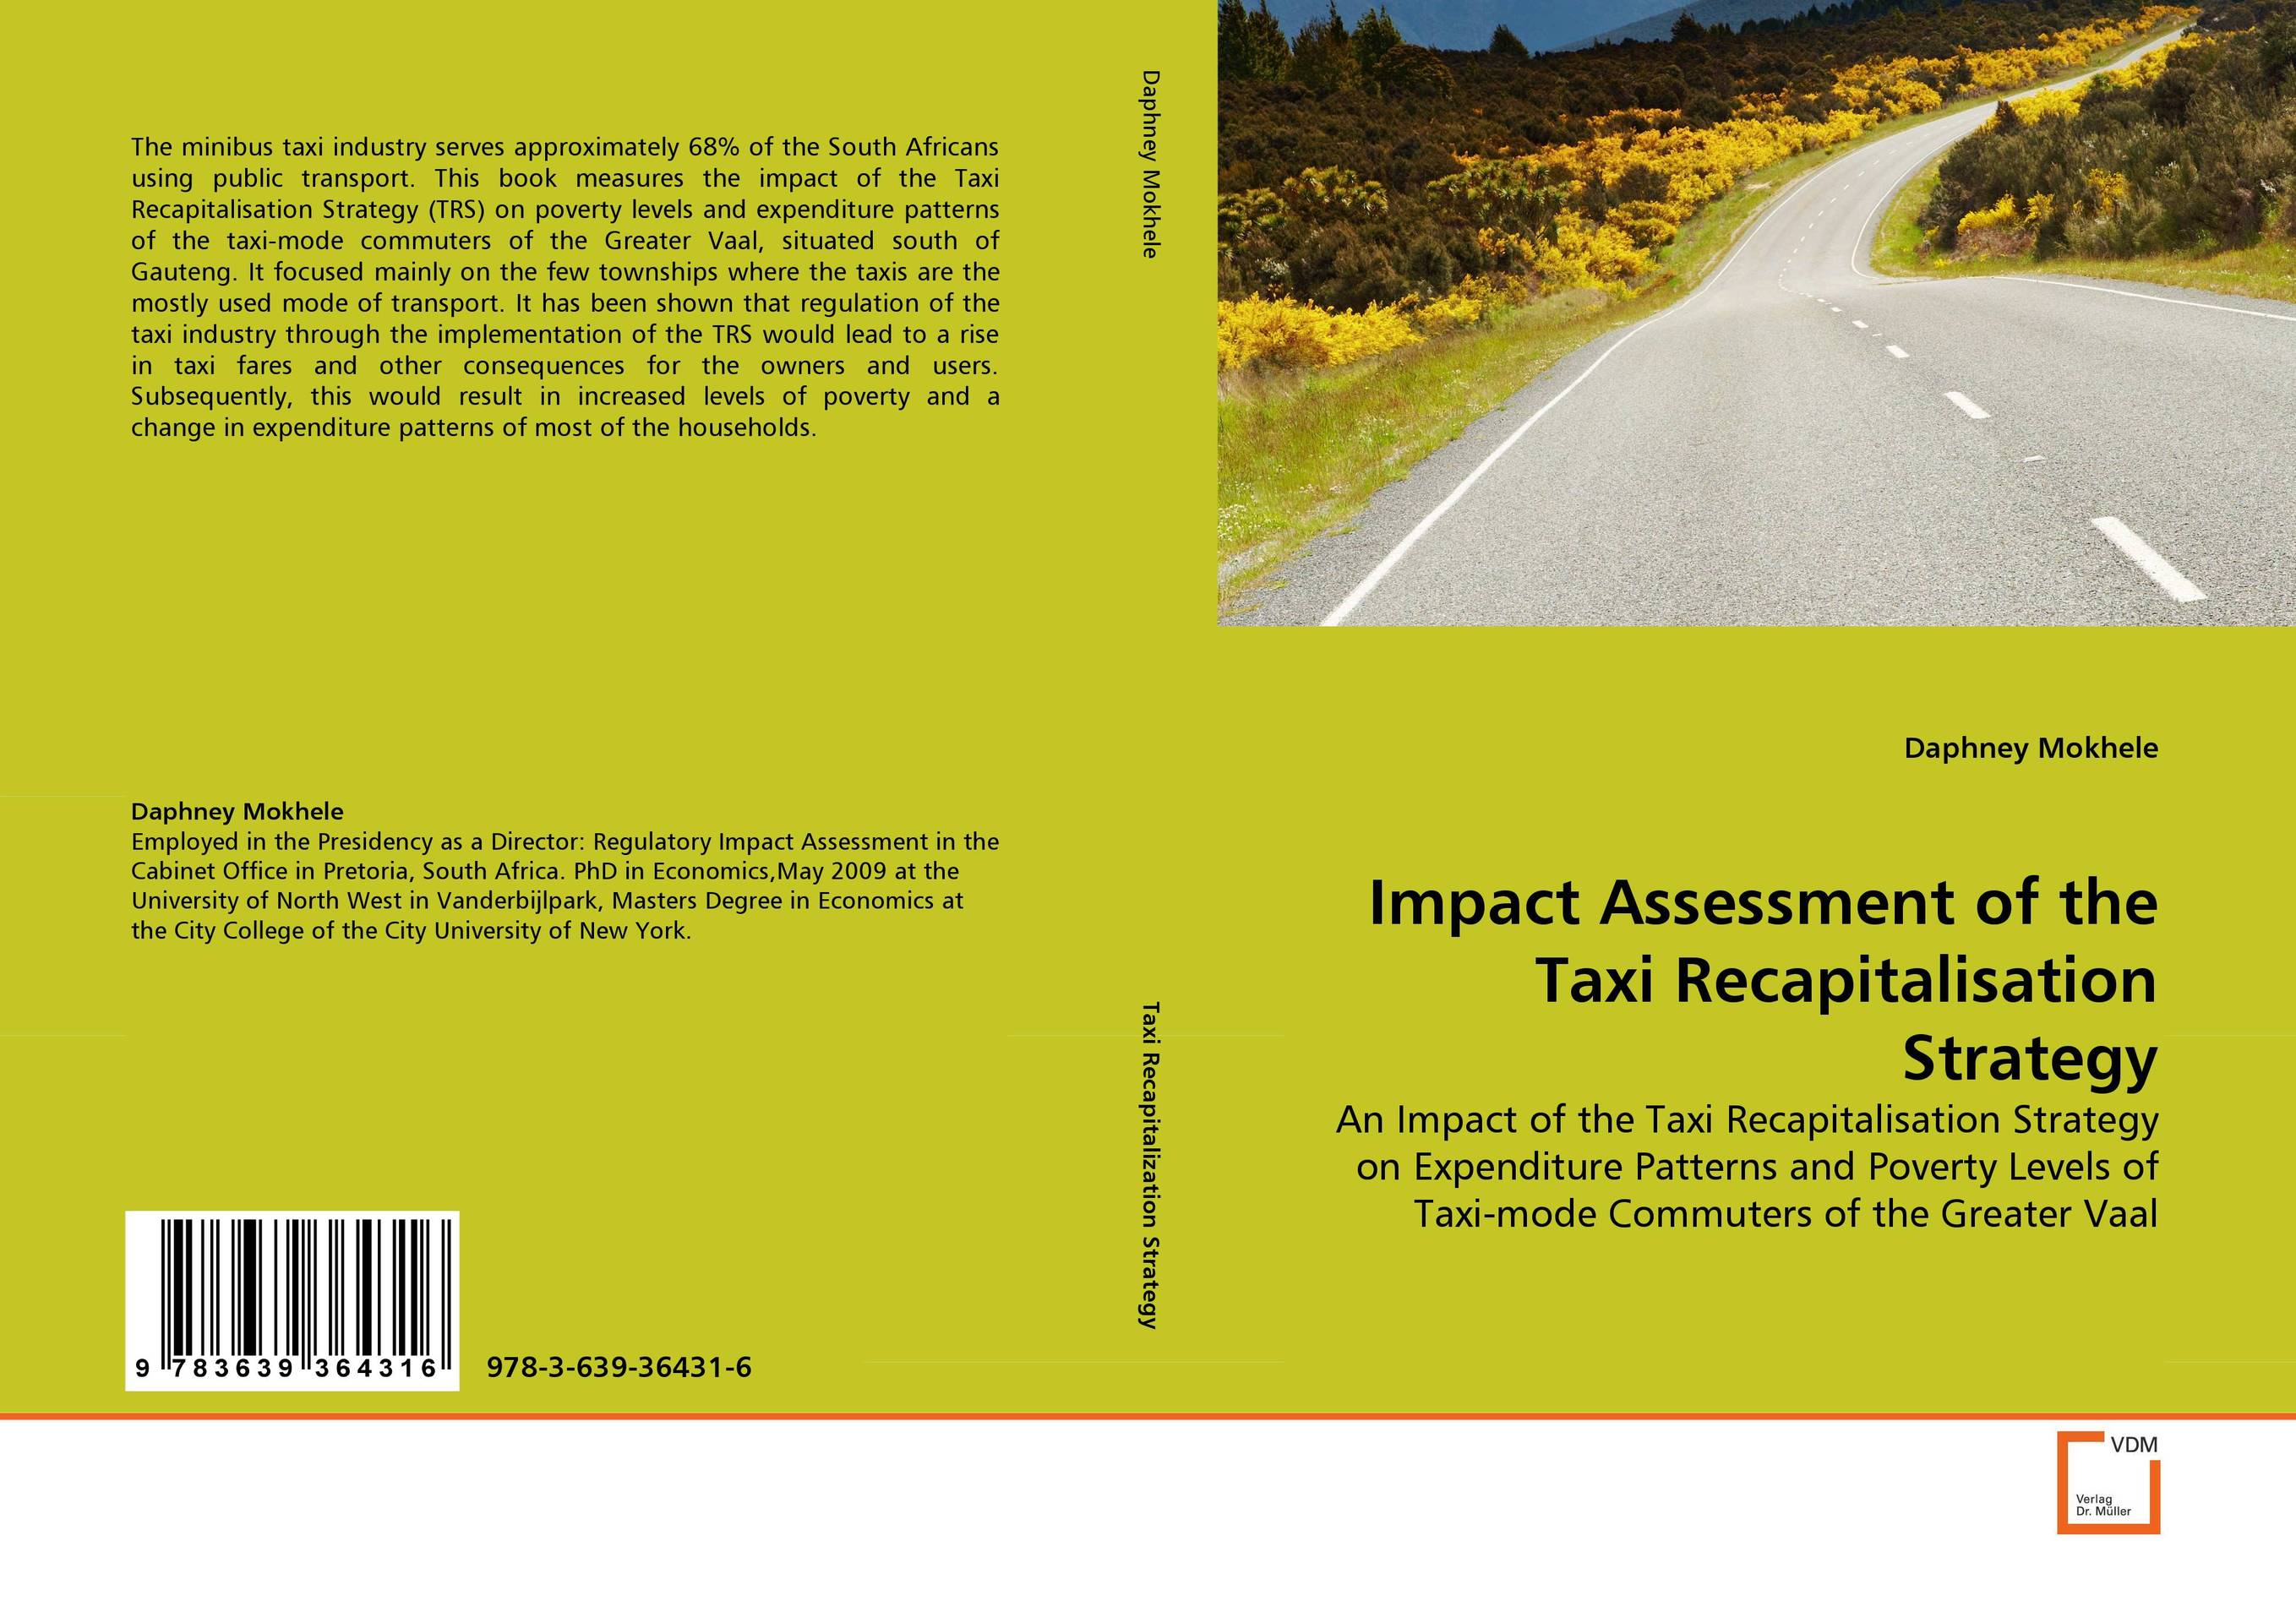 Impact Assessment of the Taxi Recapitalisation Strategy confessions of new york taxi driver eugene salomon